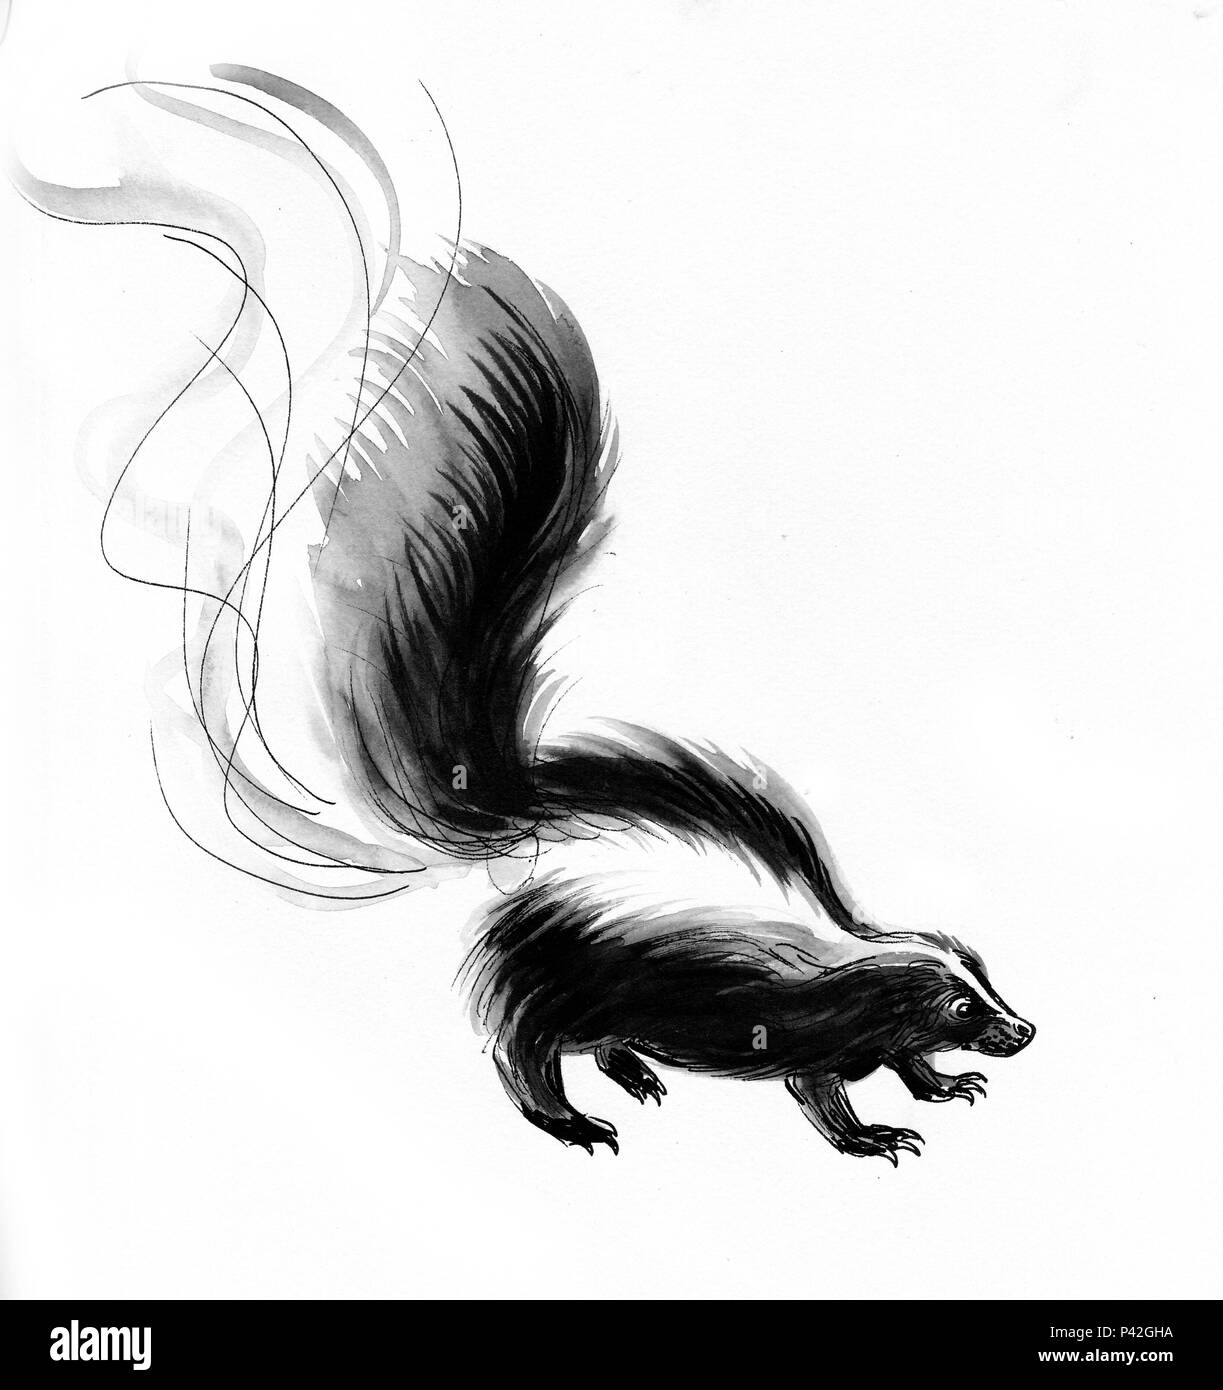 Stinky Skunk Ink Black And White Drawing Stock Photo 209039974 Alamy